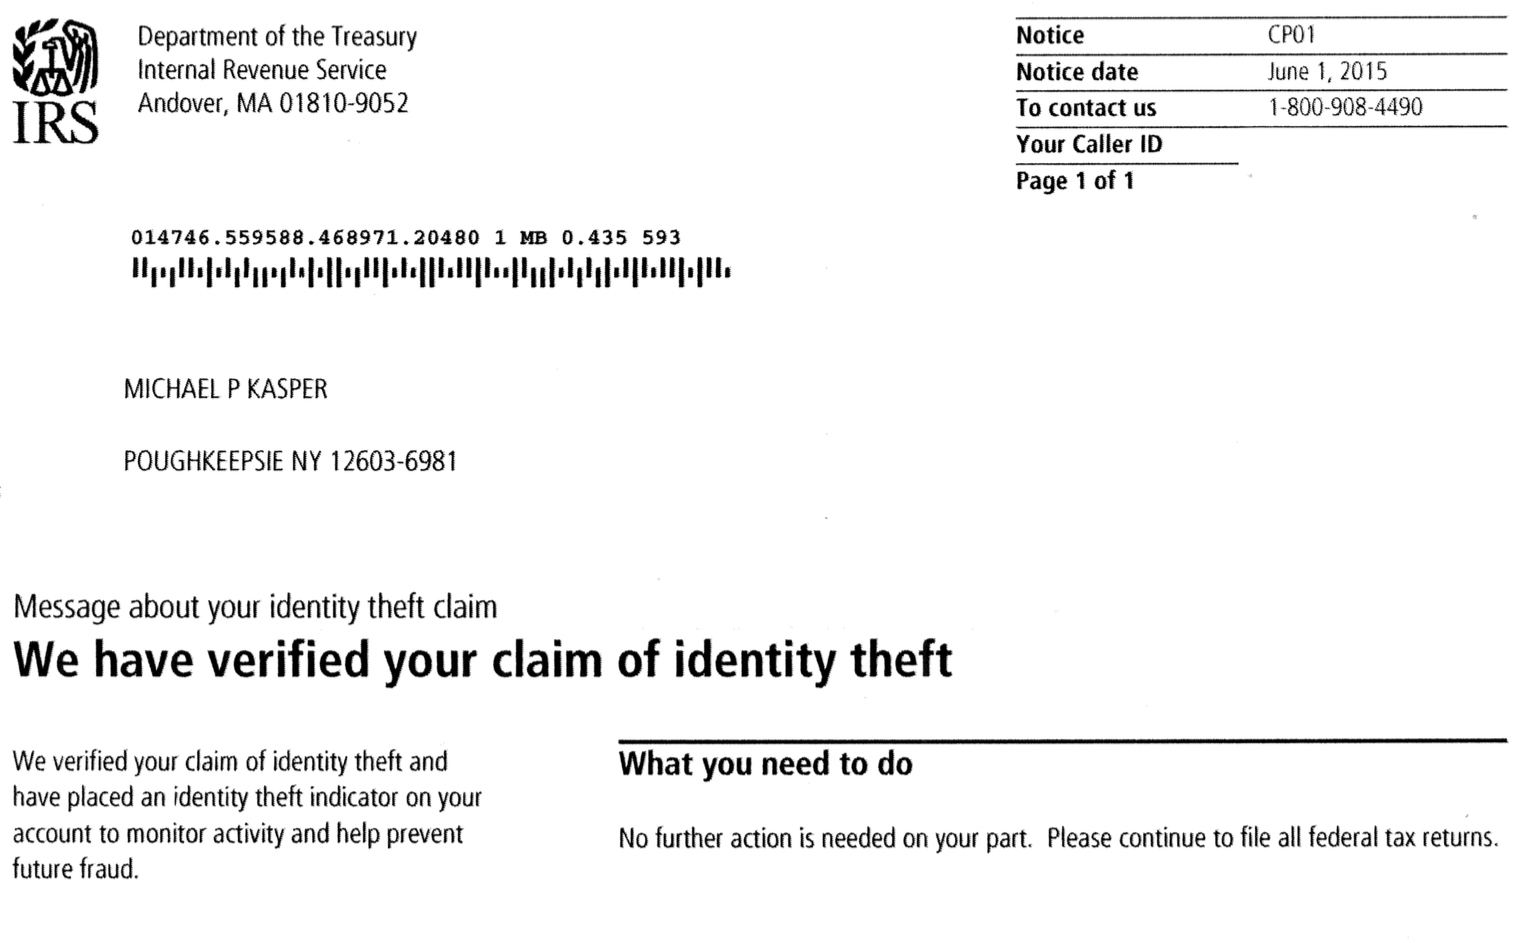 A rare detailed look inside the IRS's massive data breach